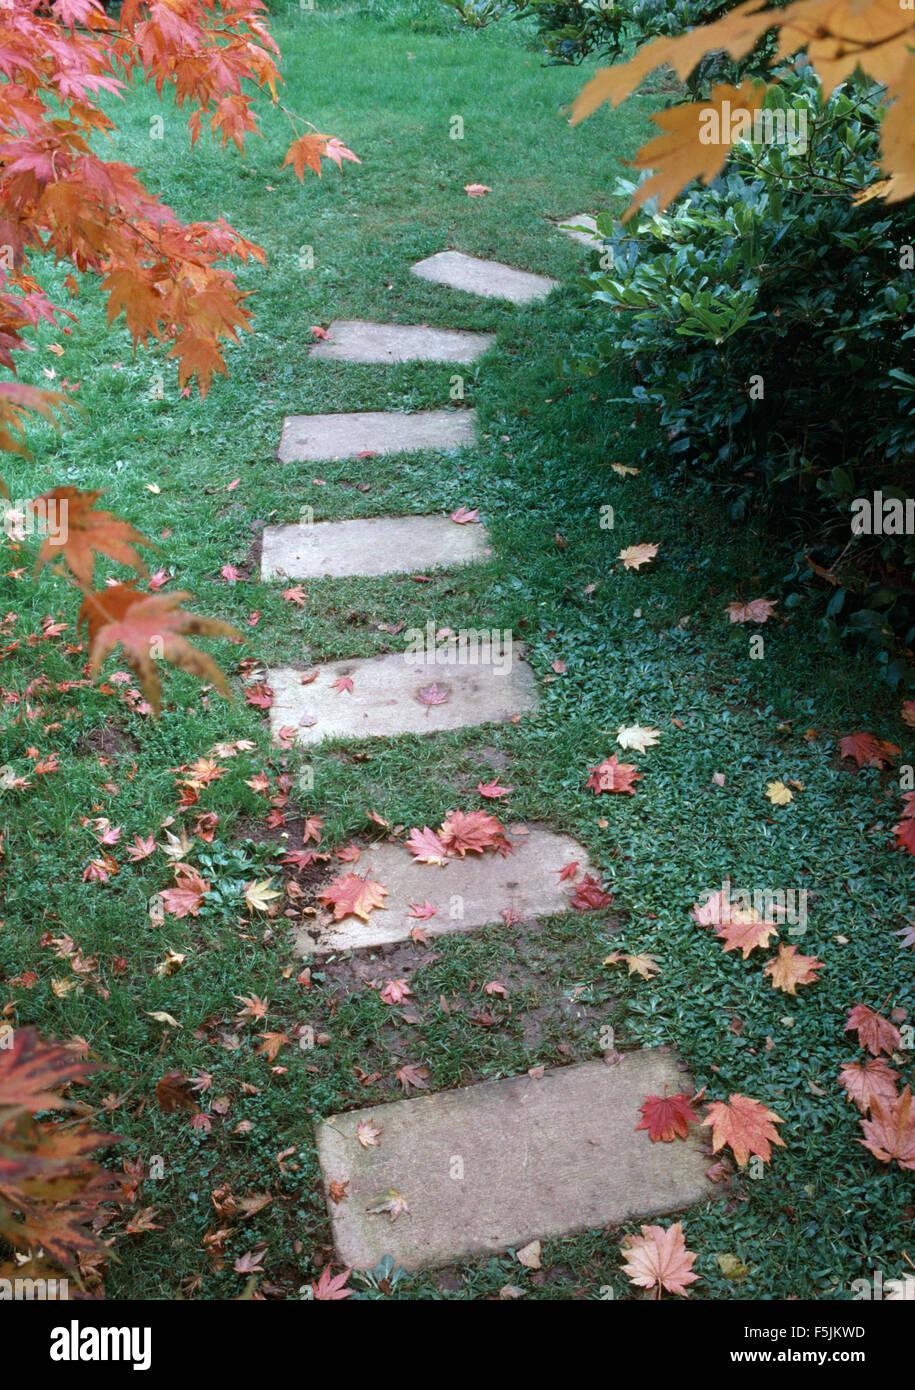 Close-up of stone paving slabs across a lawn in an Autumn garden Stock Photo